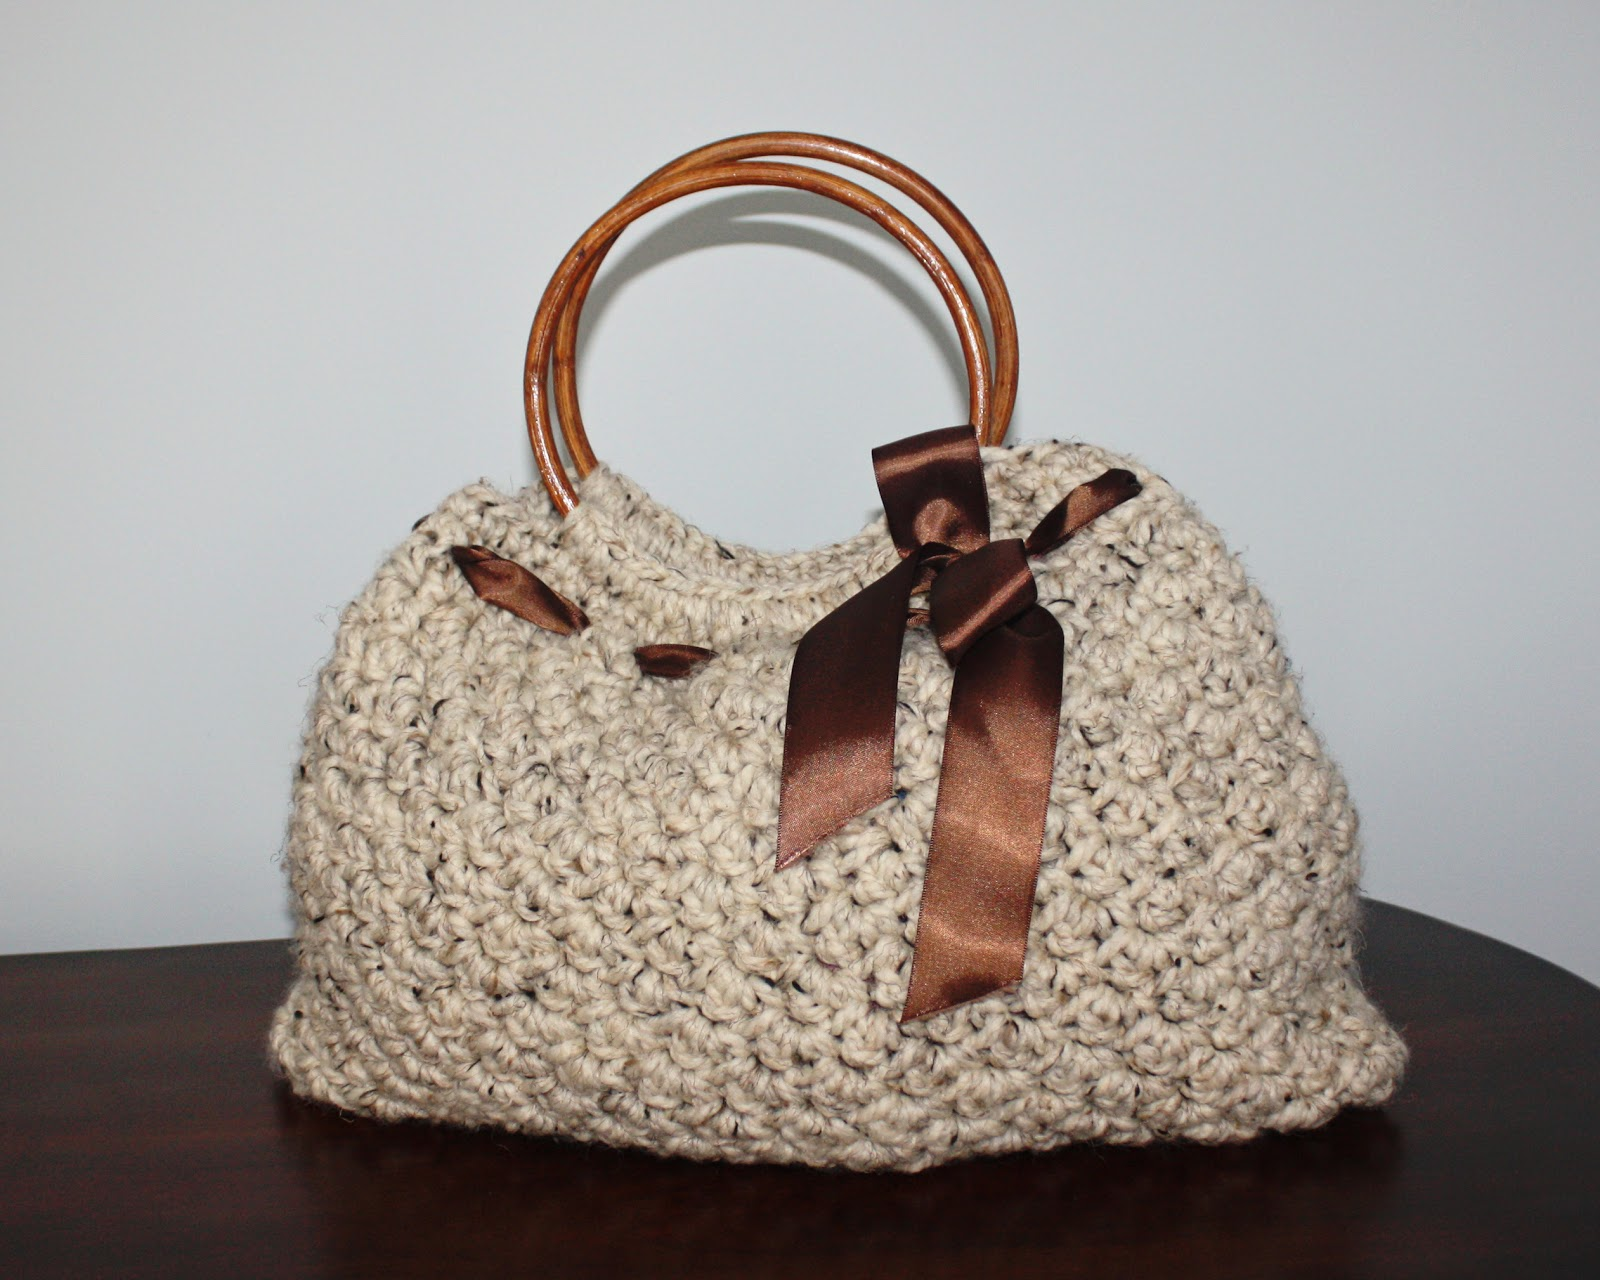 Crochet Handbag Pattern : Pretty Darn Adorable Crochet: Crochet Handbag/Purse